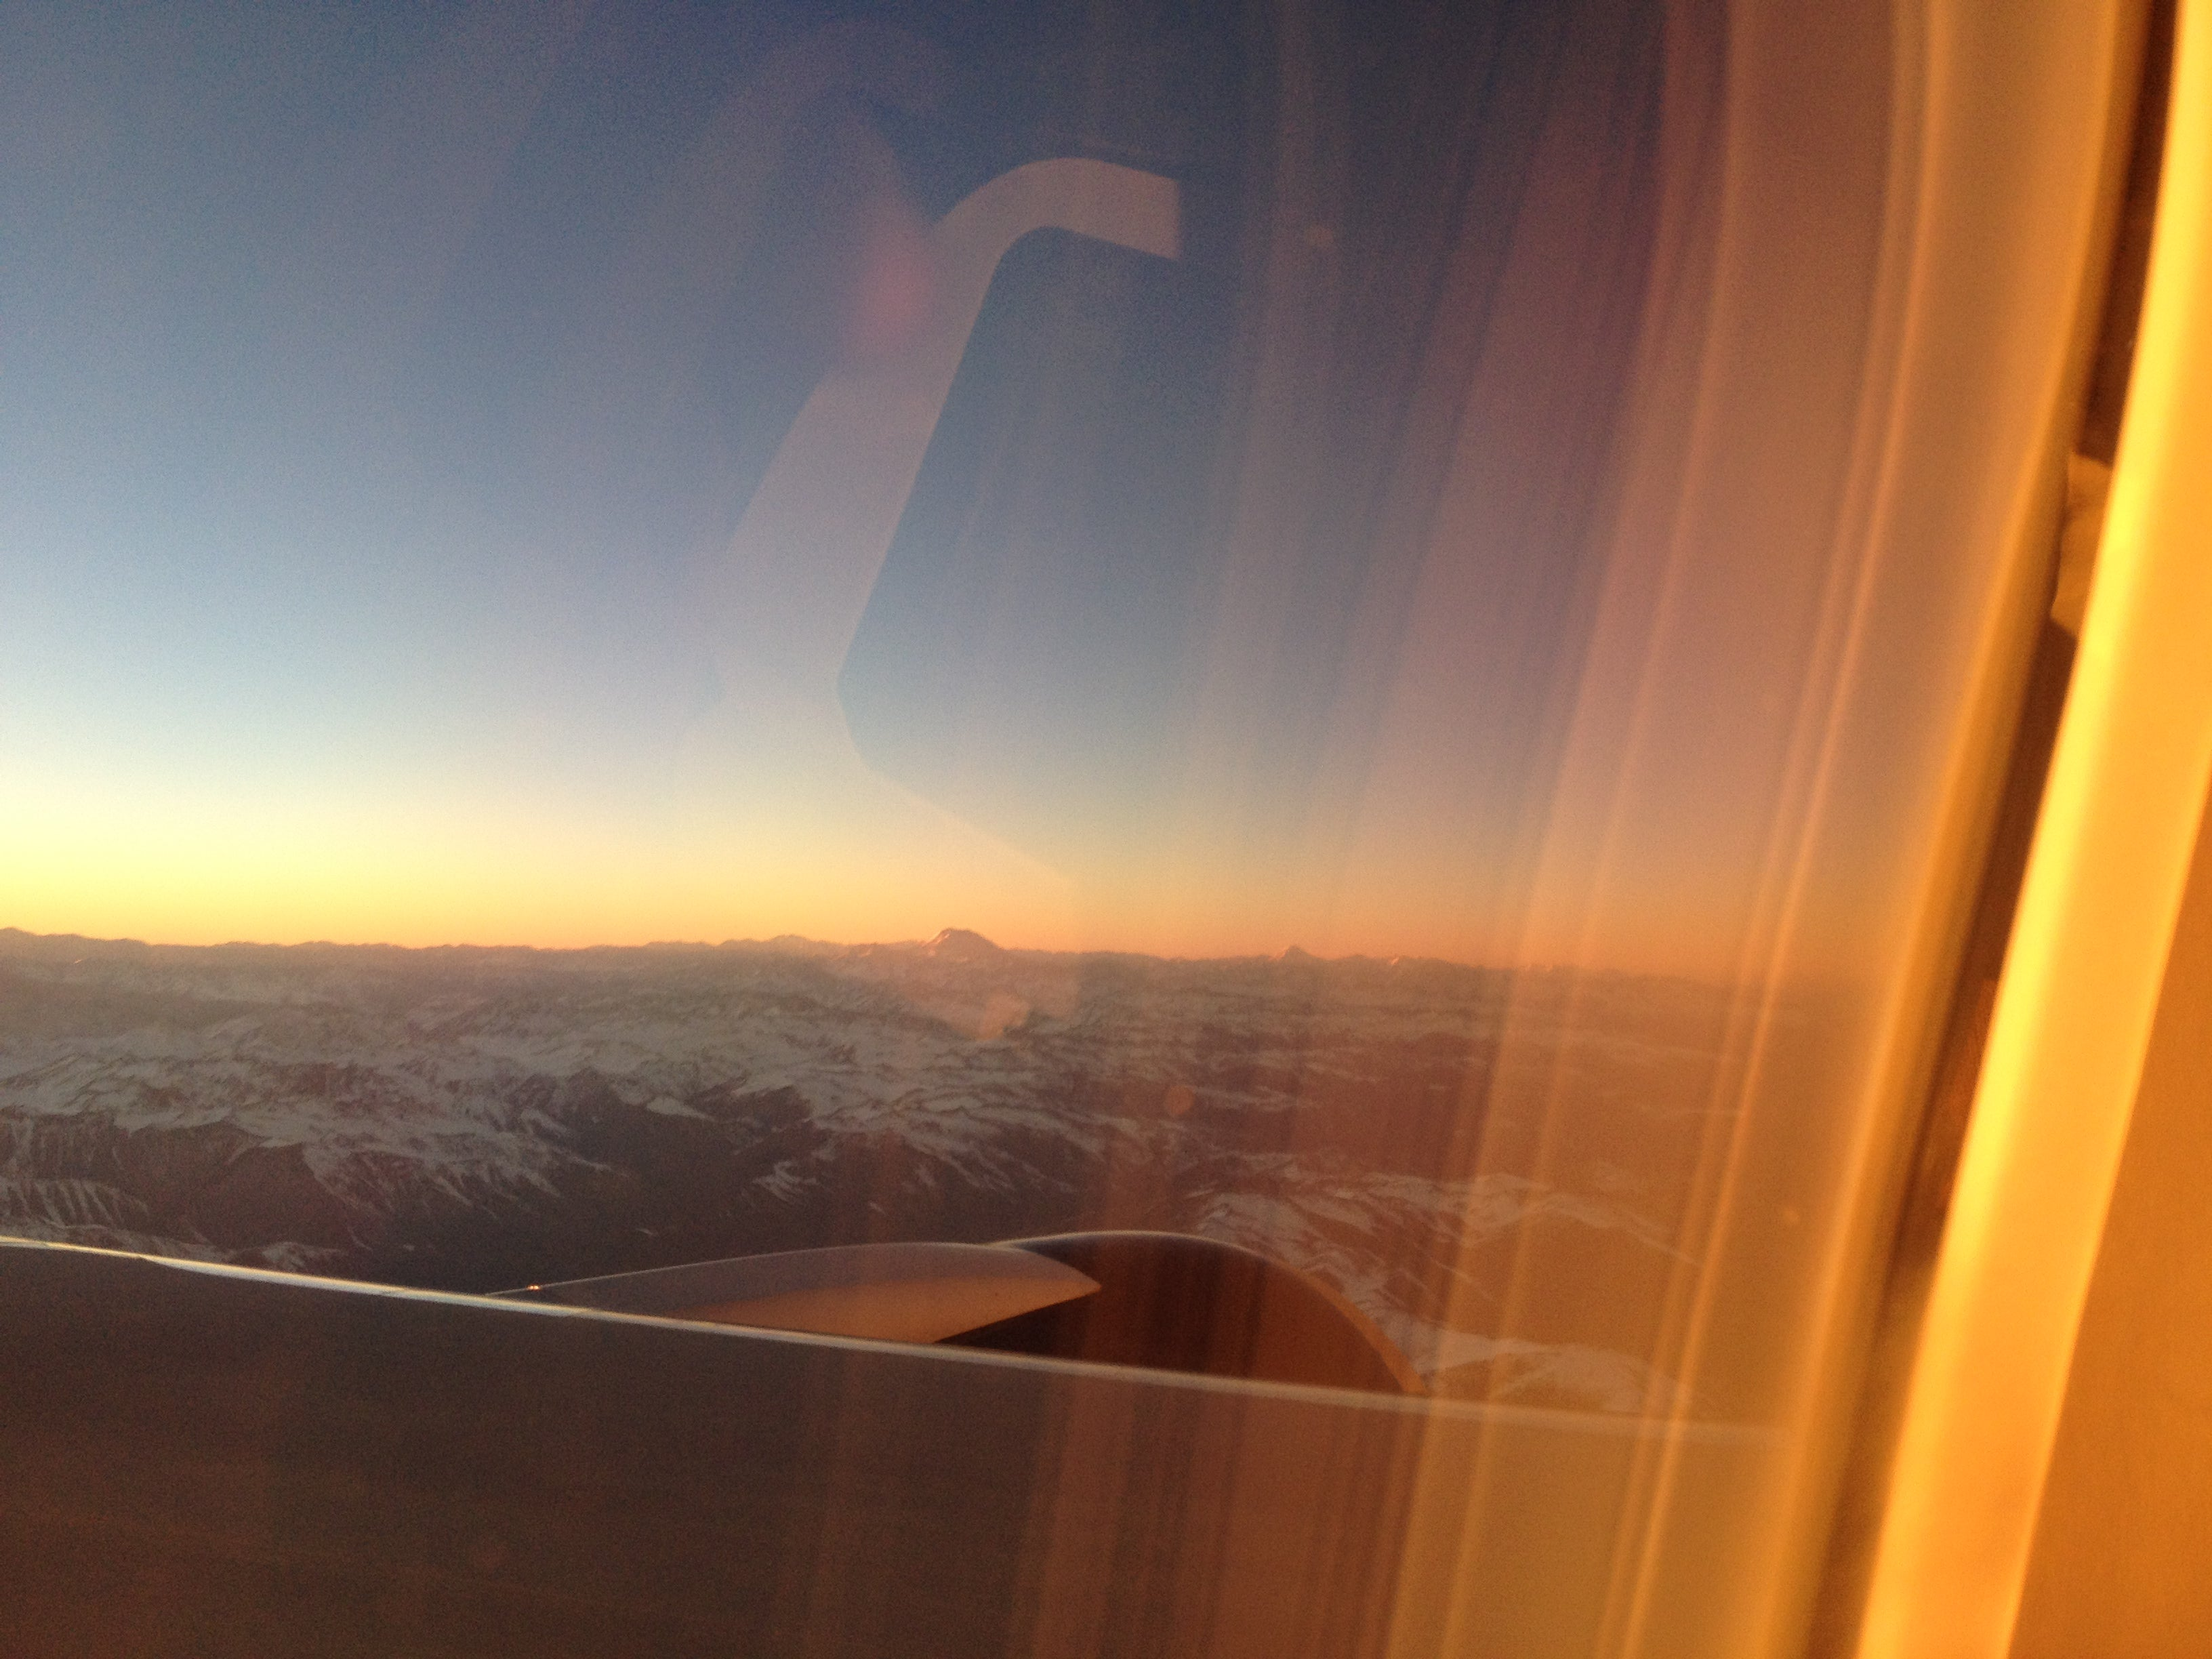 Sunrise coming into Santiago